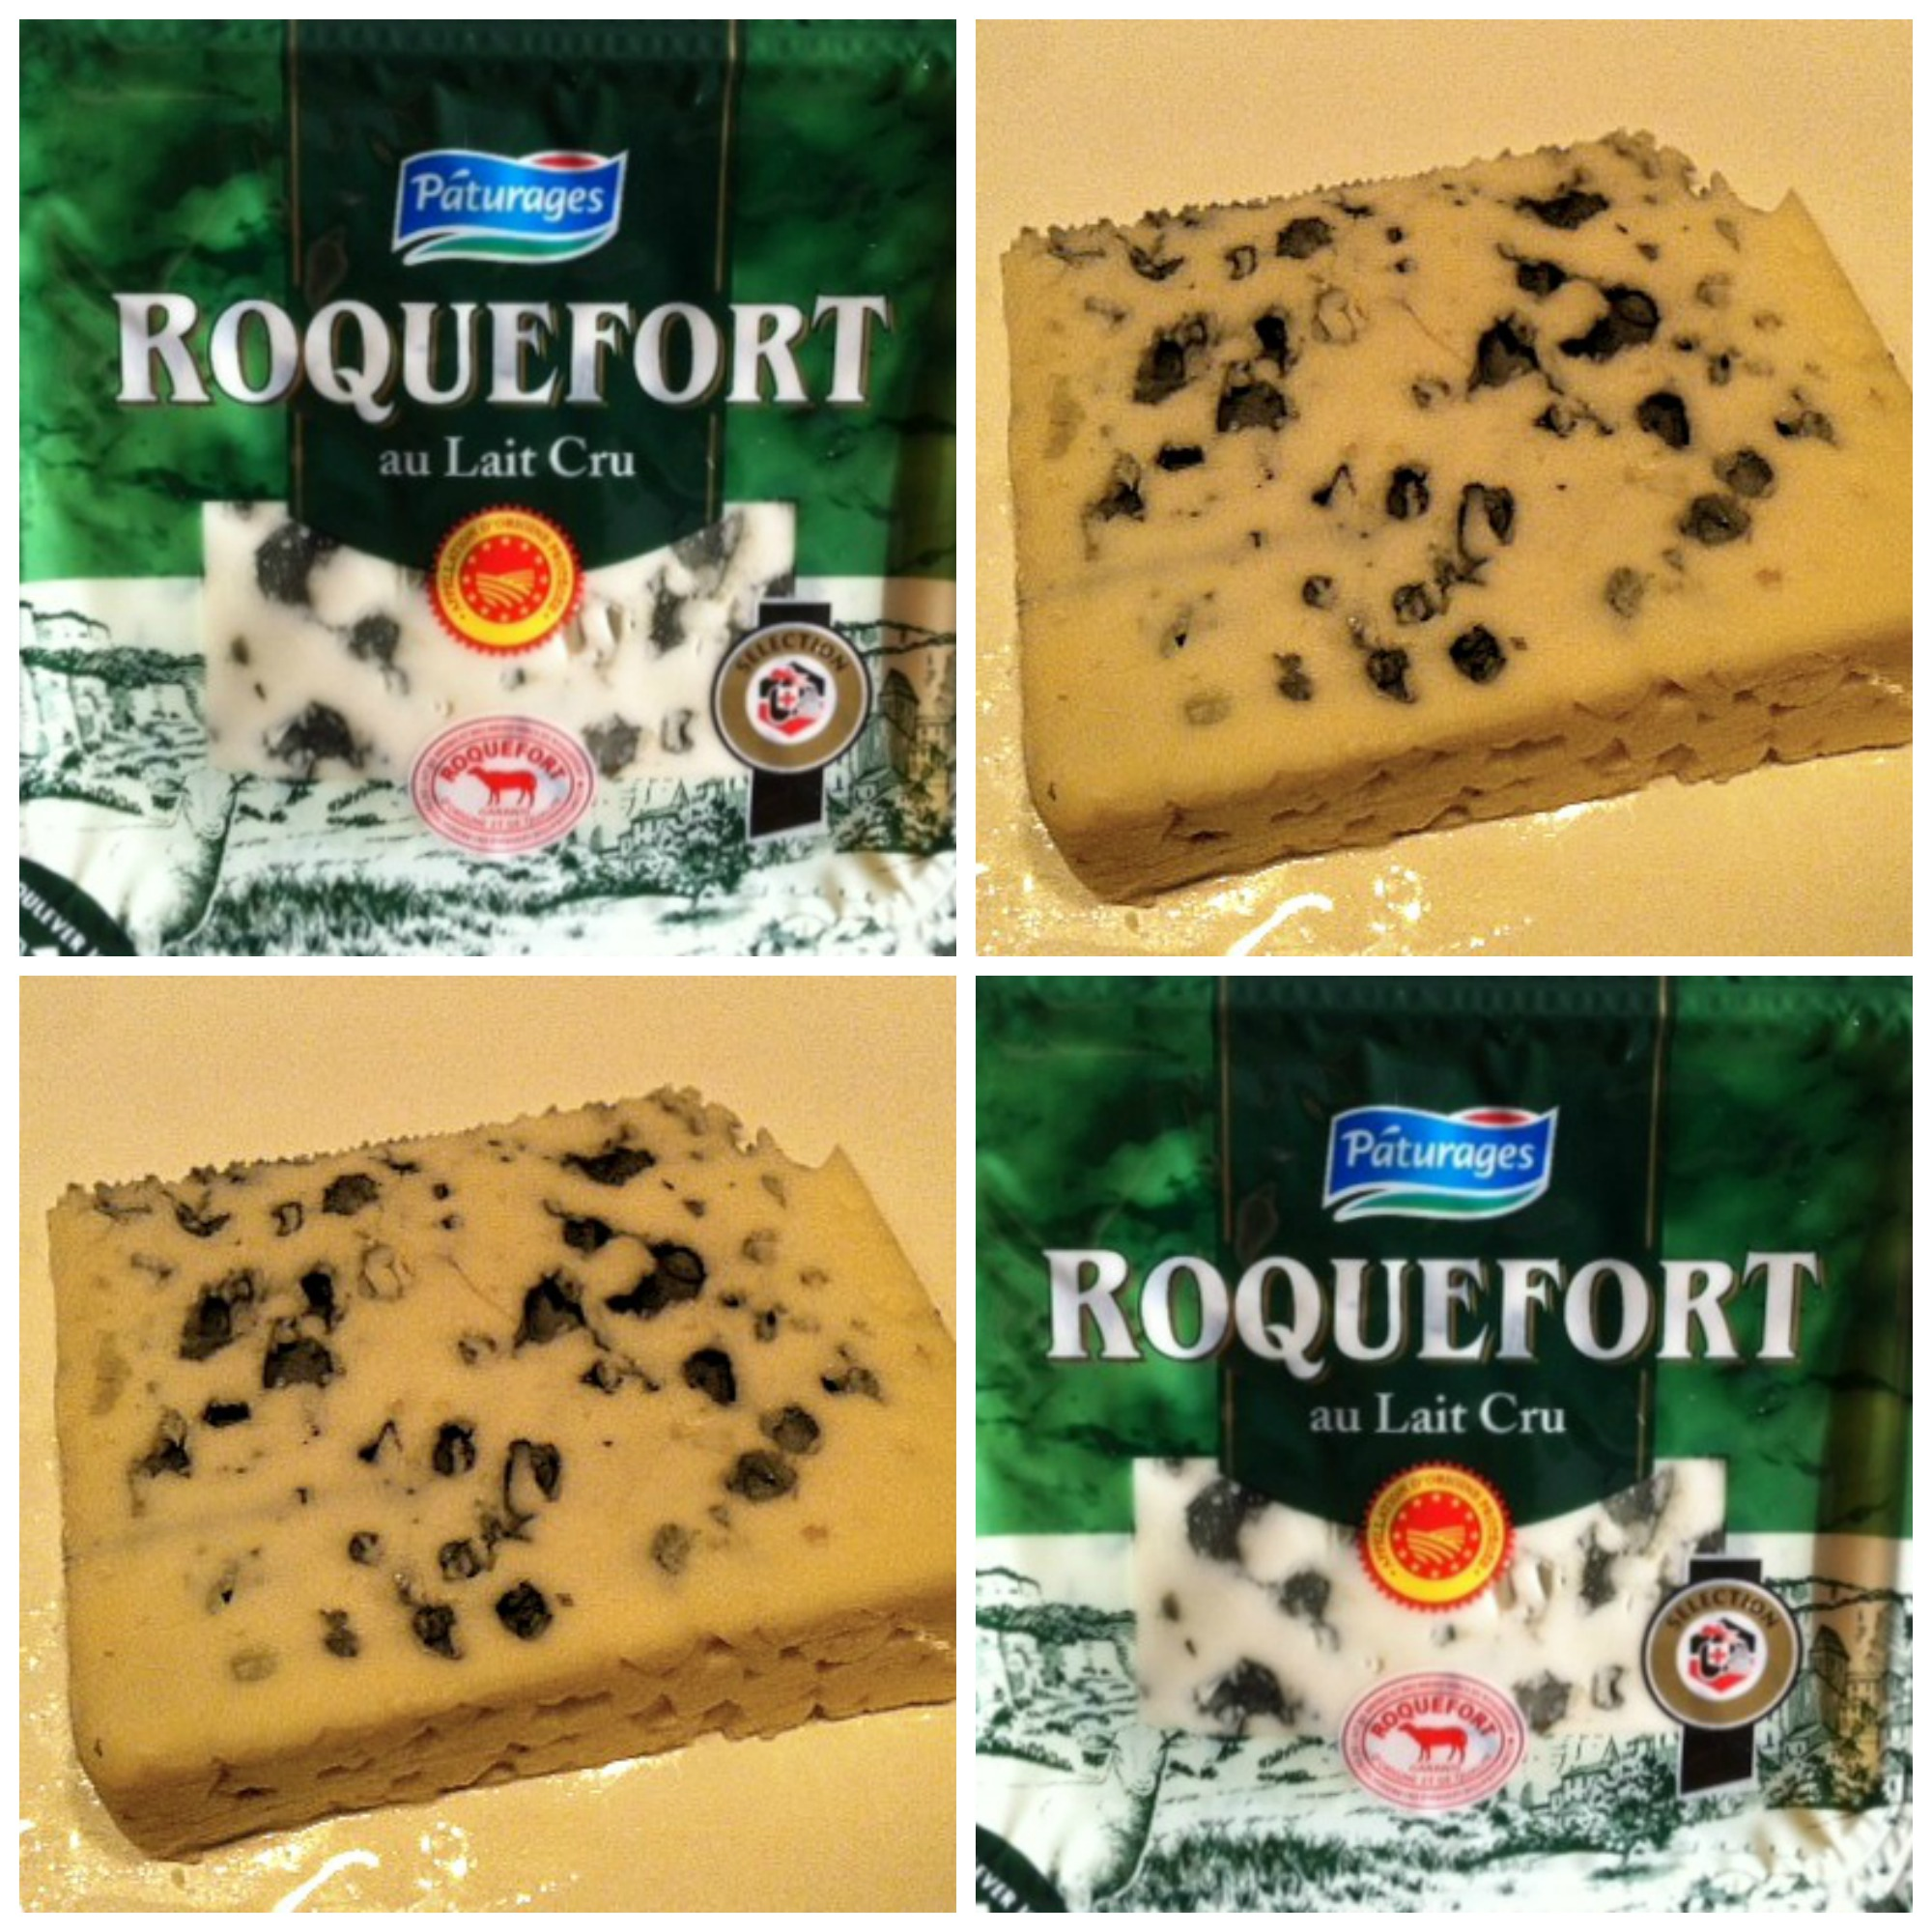 Roquefort - cheese, pines, goats and sheep - The Lou Messugo Blog